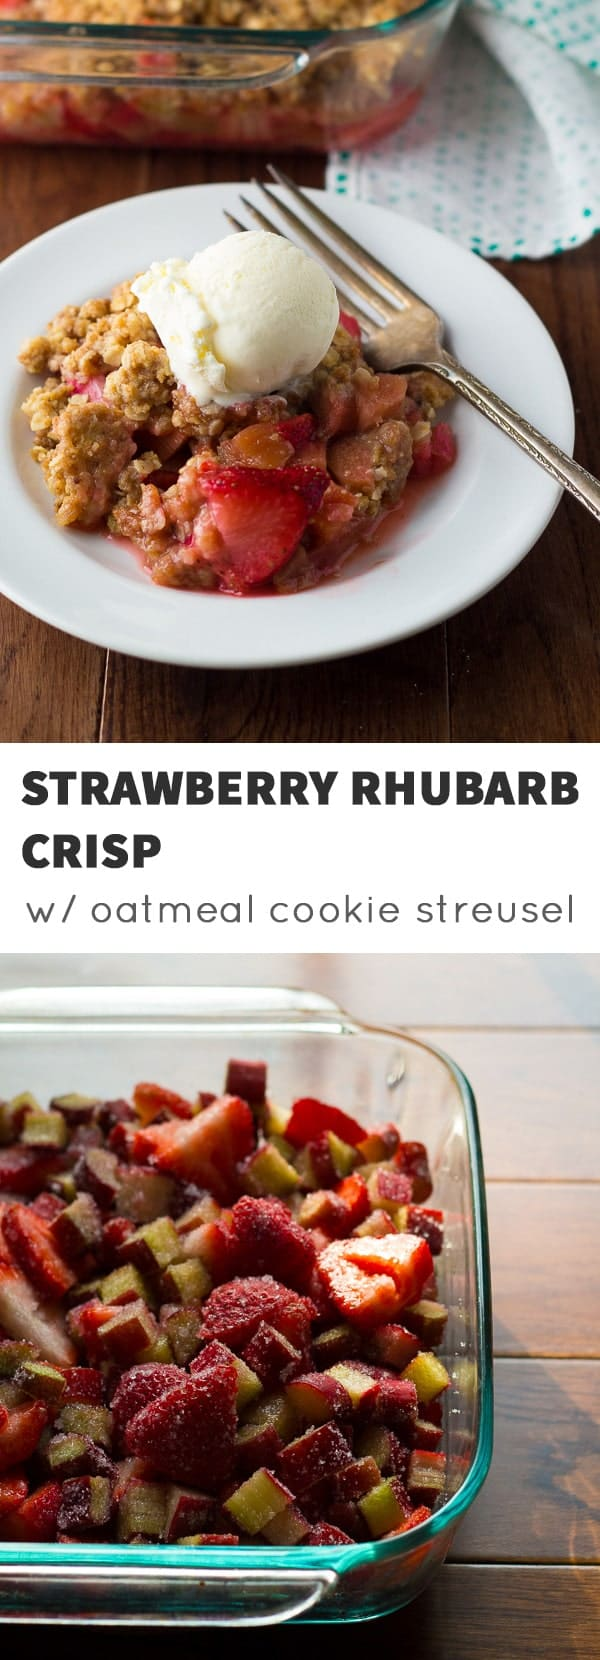 An oatmeal cookie streusel takes the old strawberry-rhubarb crisp to a whole new level! Best served warm with a scoop of vanilla ice cream.